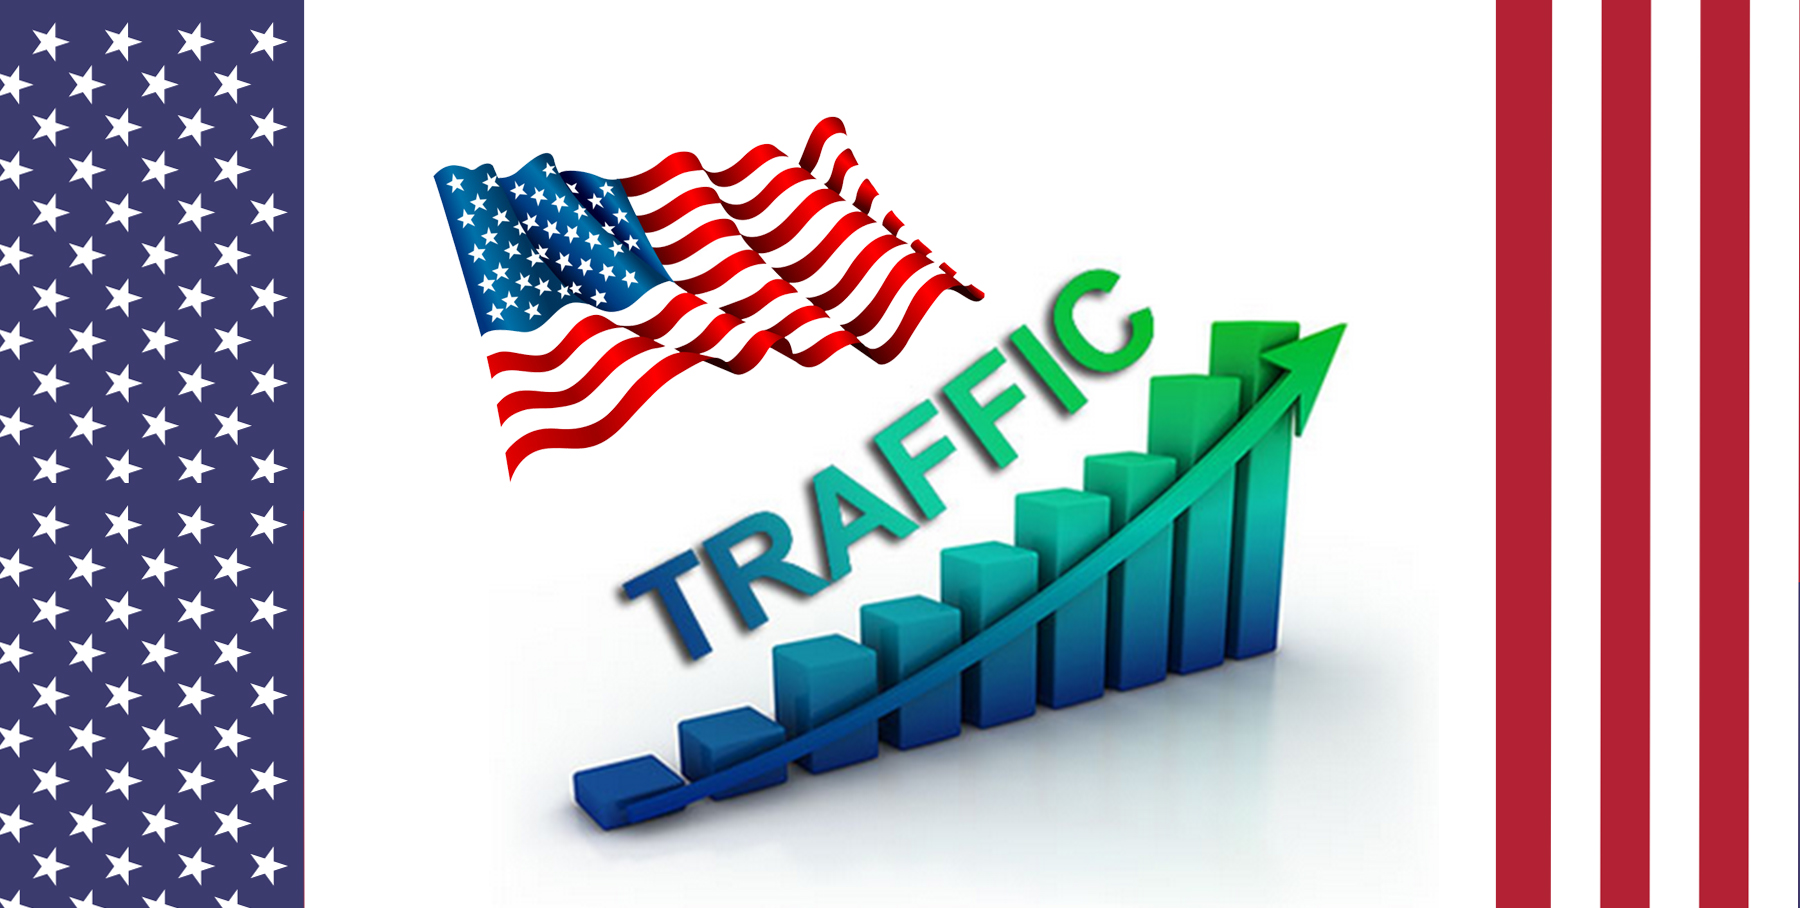 Real USA 3000 Visitors/Traffic, for three days, 1000 per day